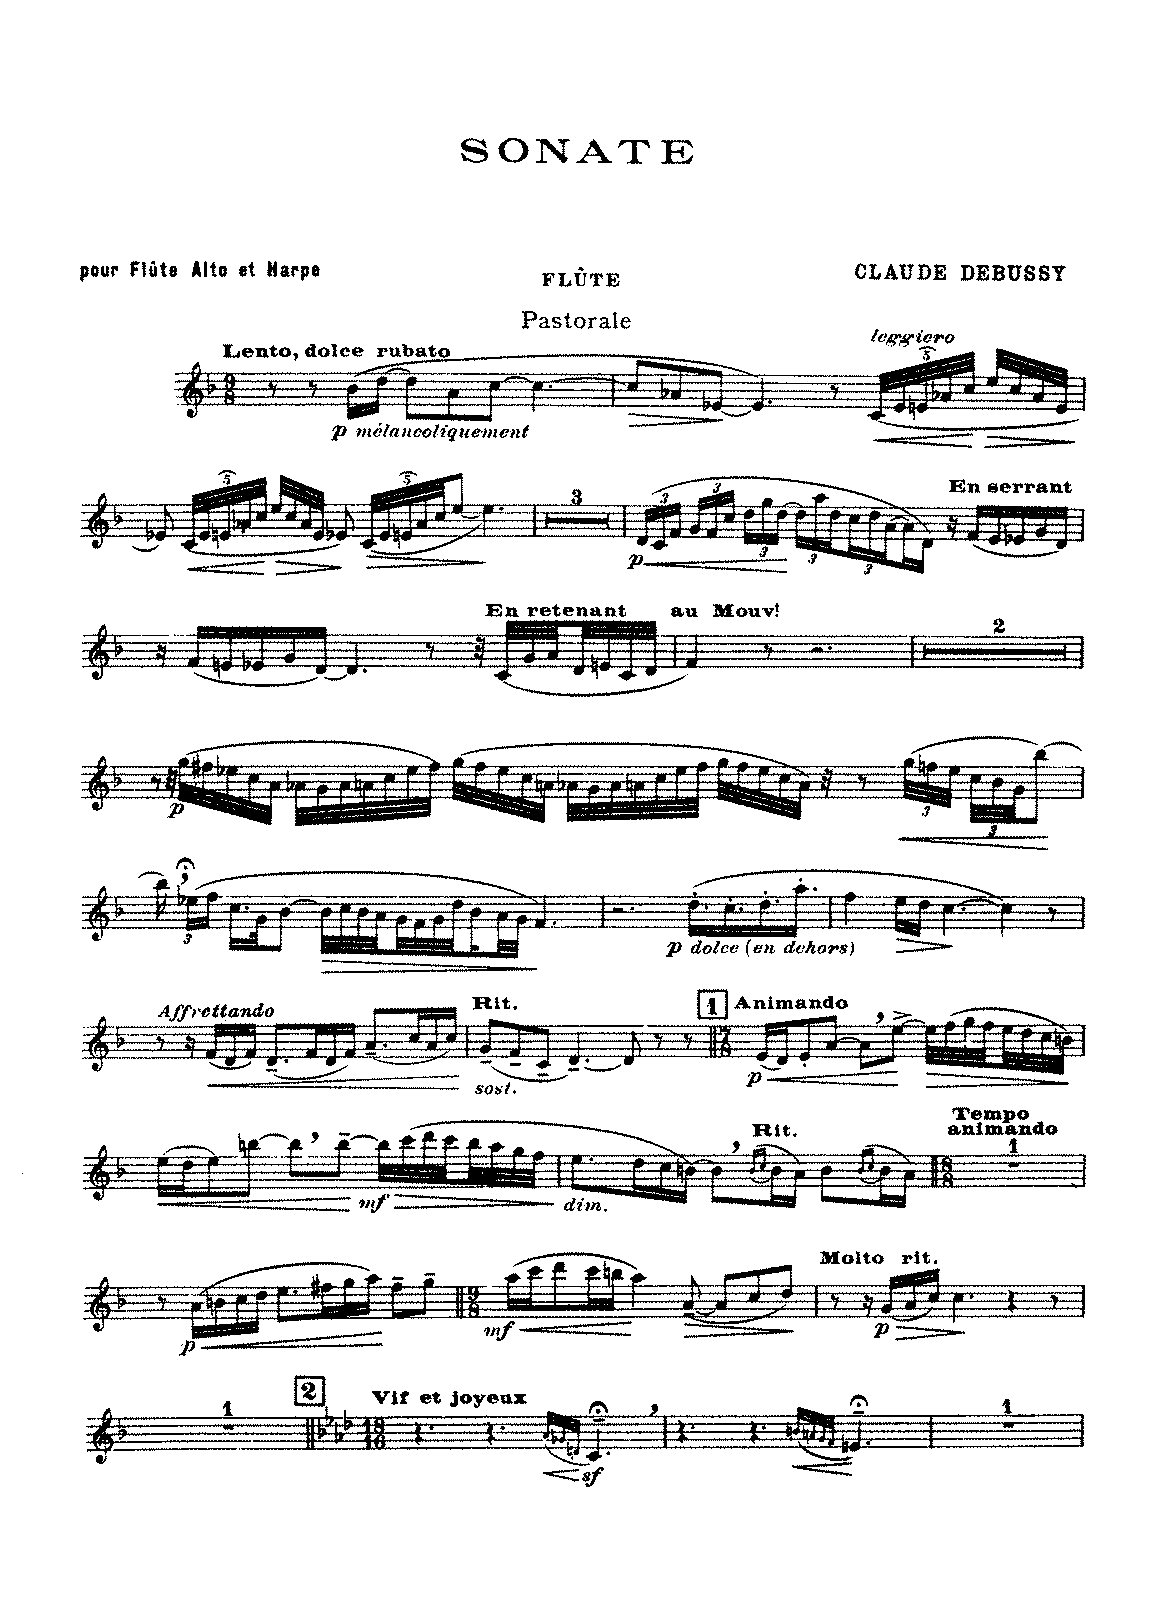 Debussy - Sonata for Flute, Viola and Harp (parts).pdf